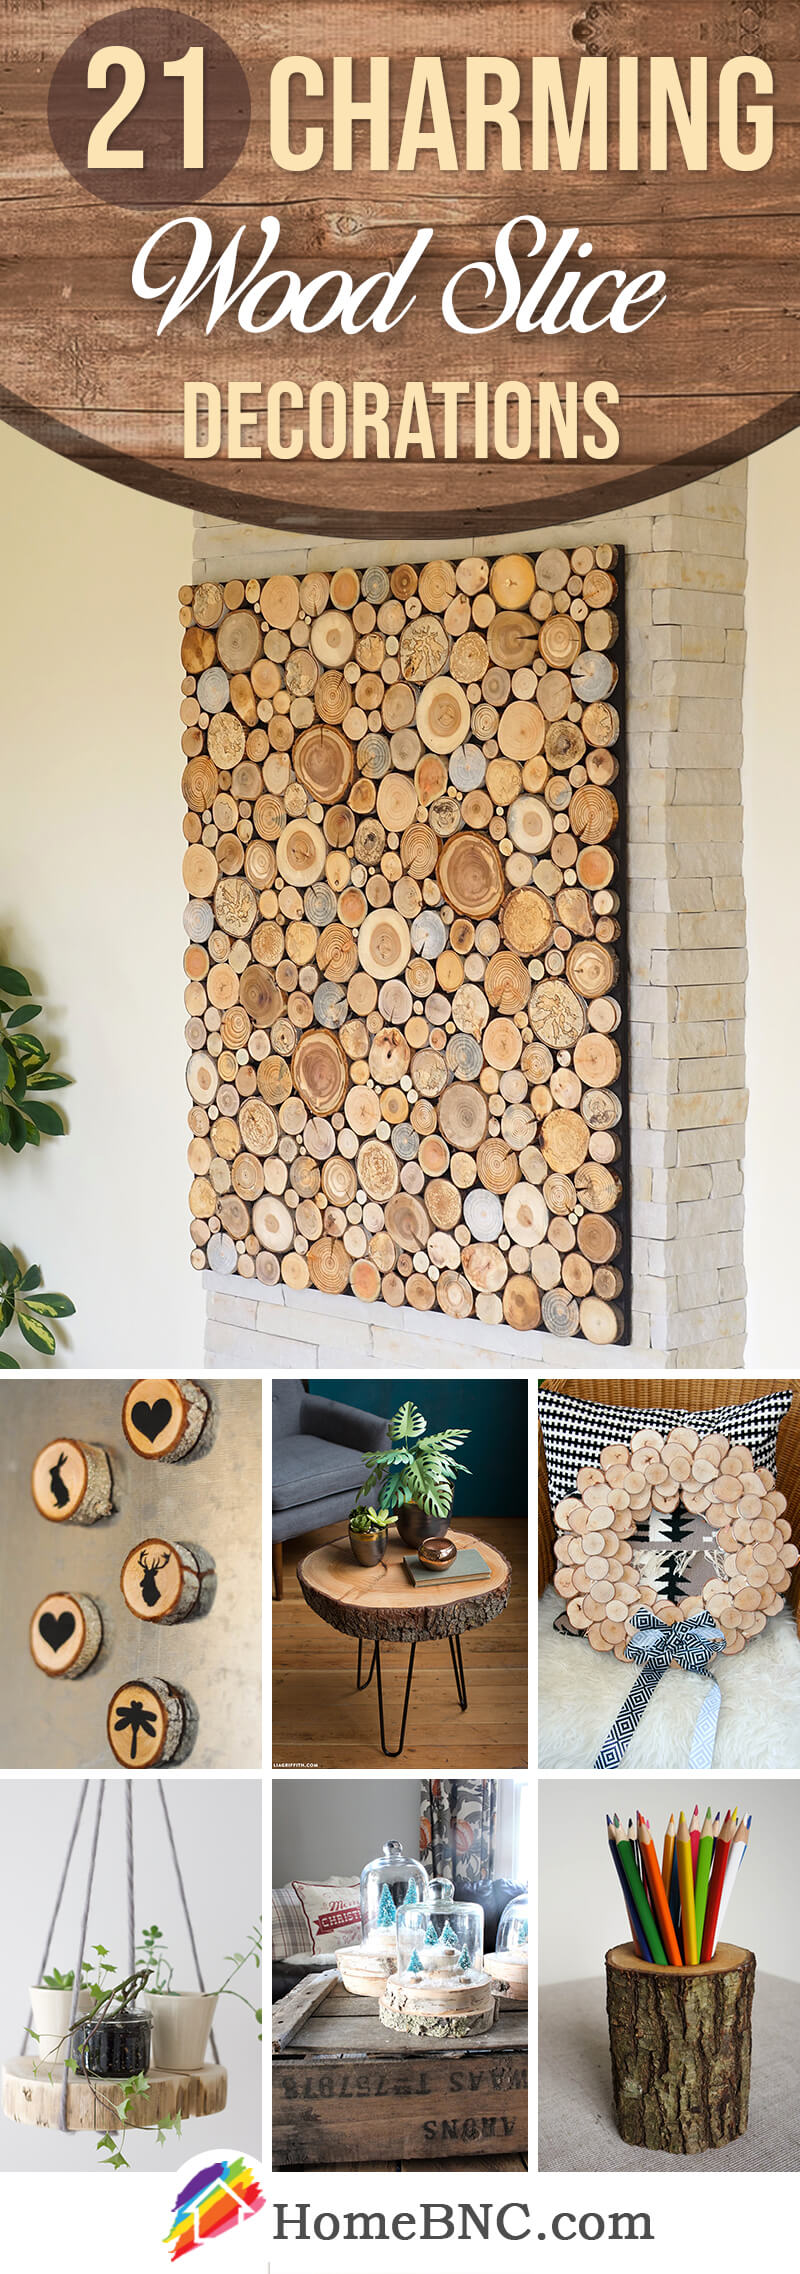 Wood Slice Decorations